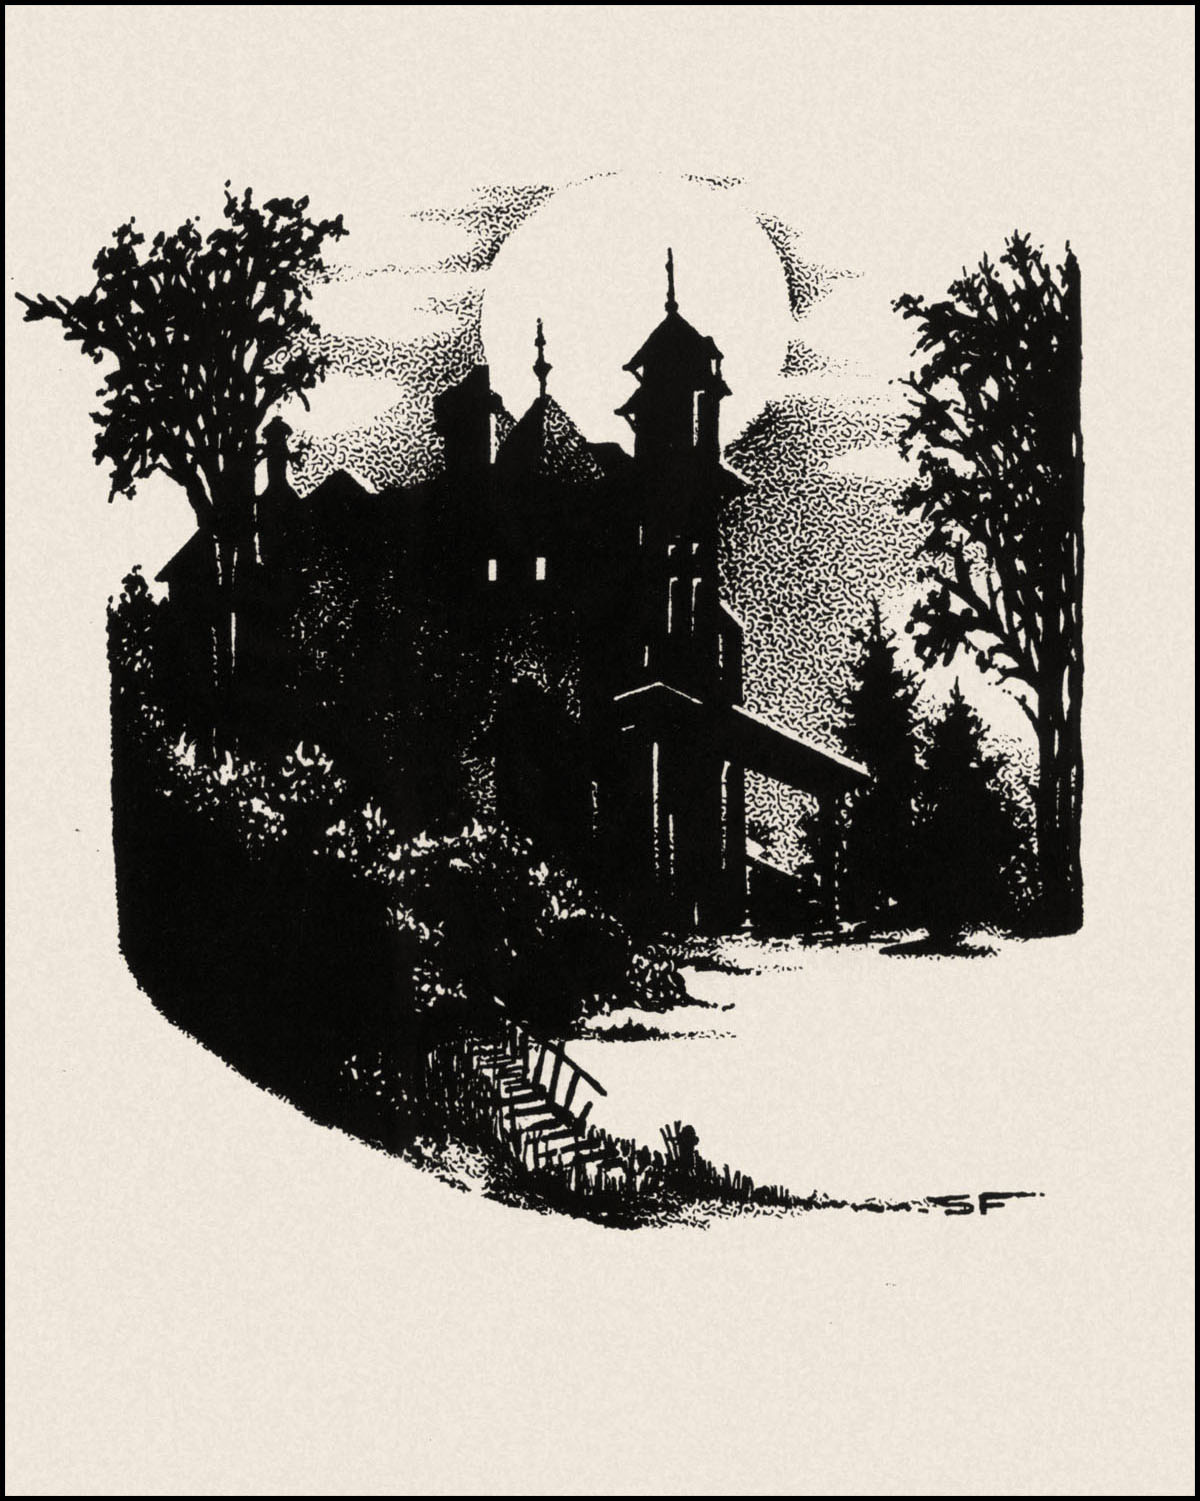 Witchhouse on pinterest witch house claire boucher and for Witch house music